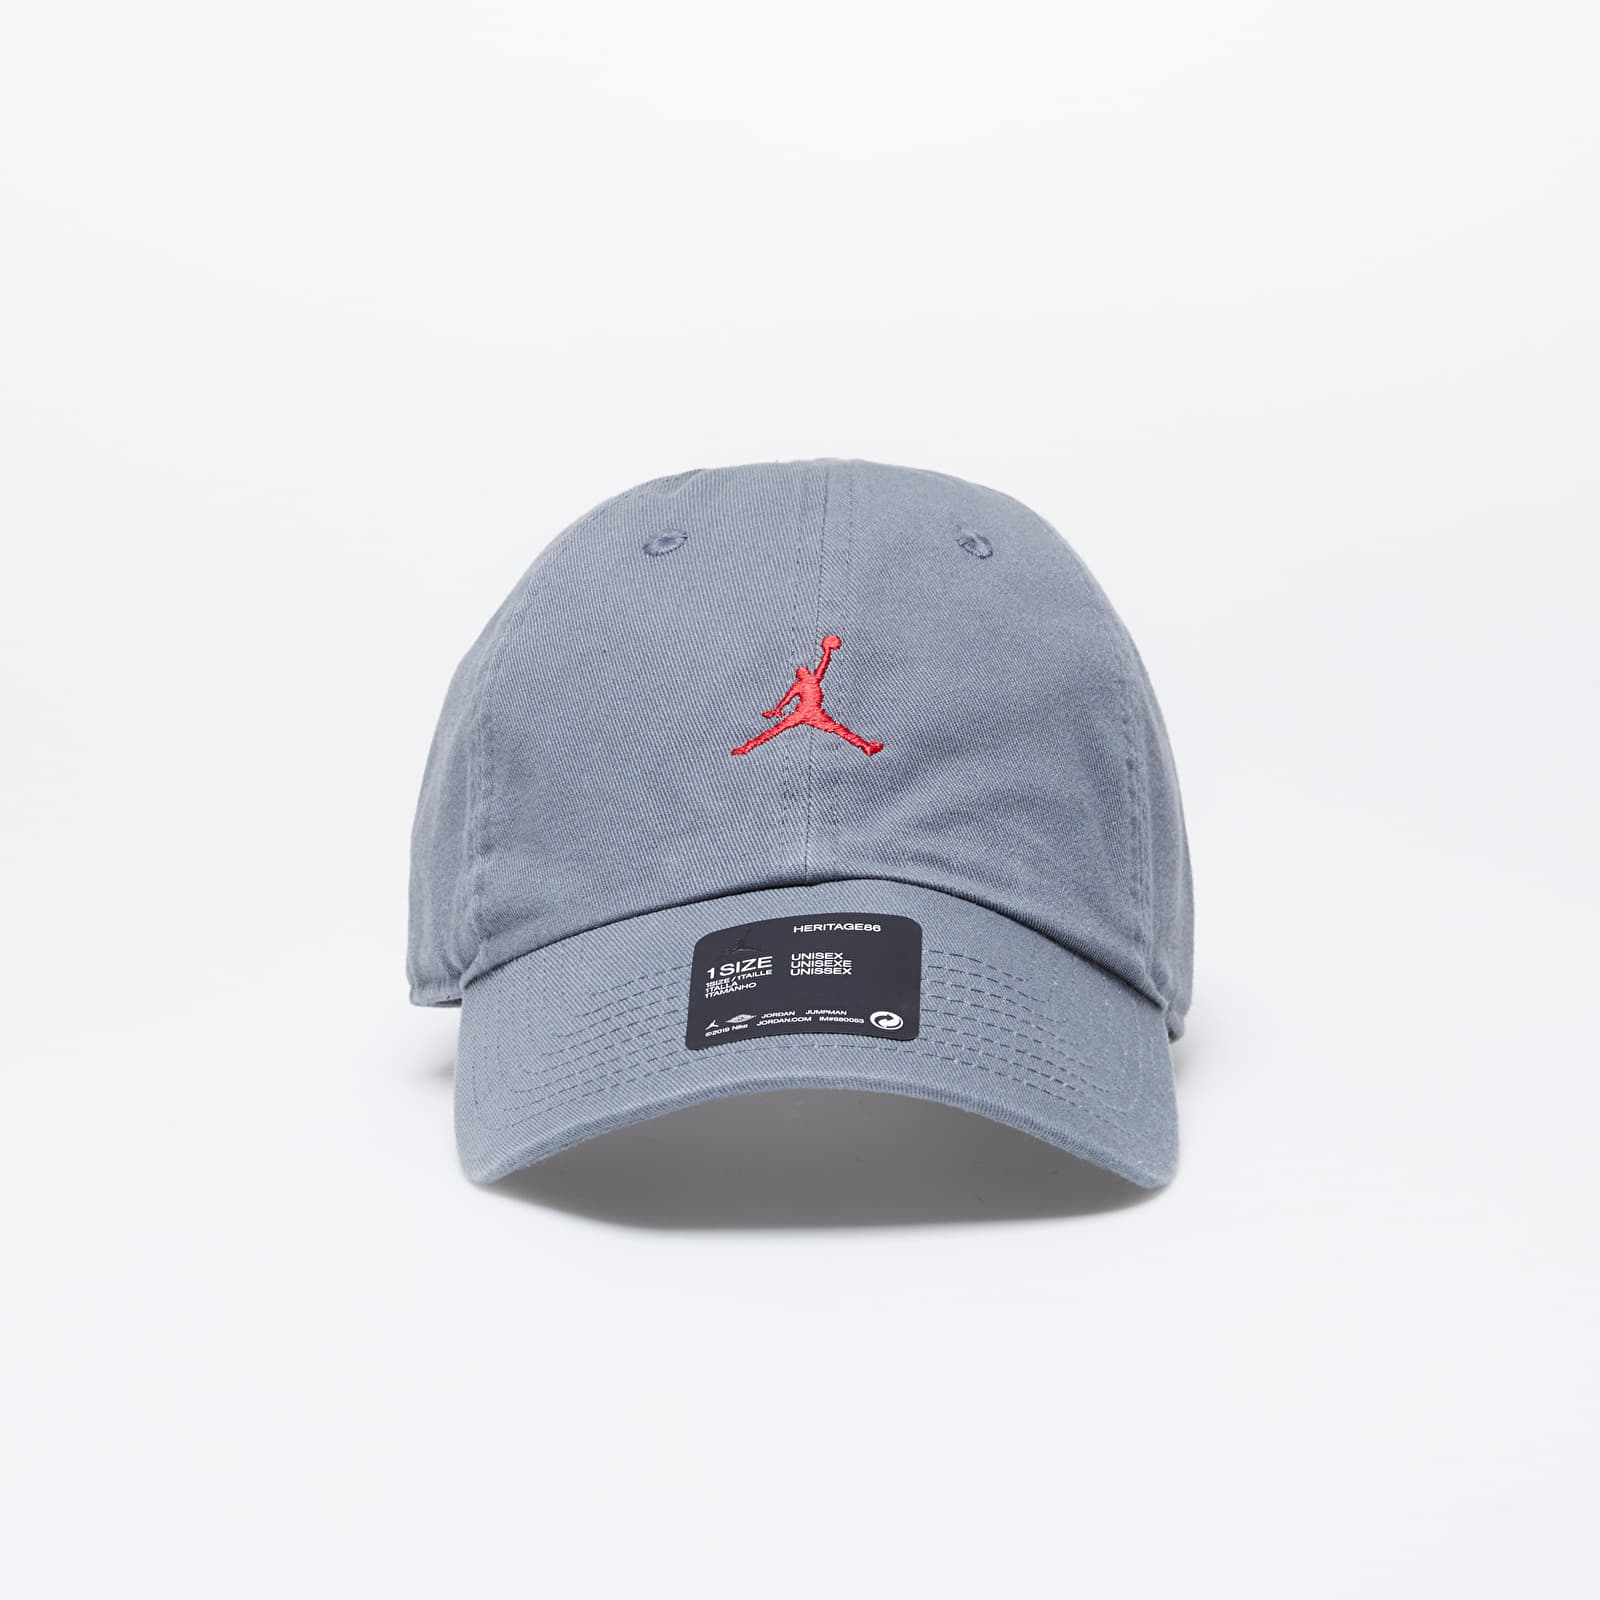 Caps Jordan H86 Jumpman Floppy Cap Smoke Grey/ Gym Red